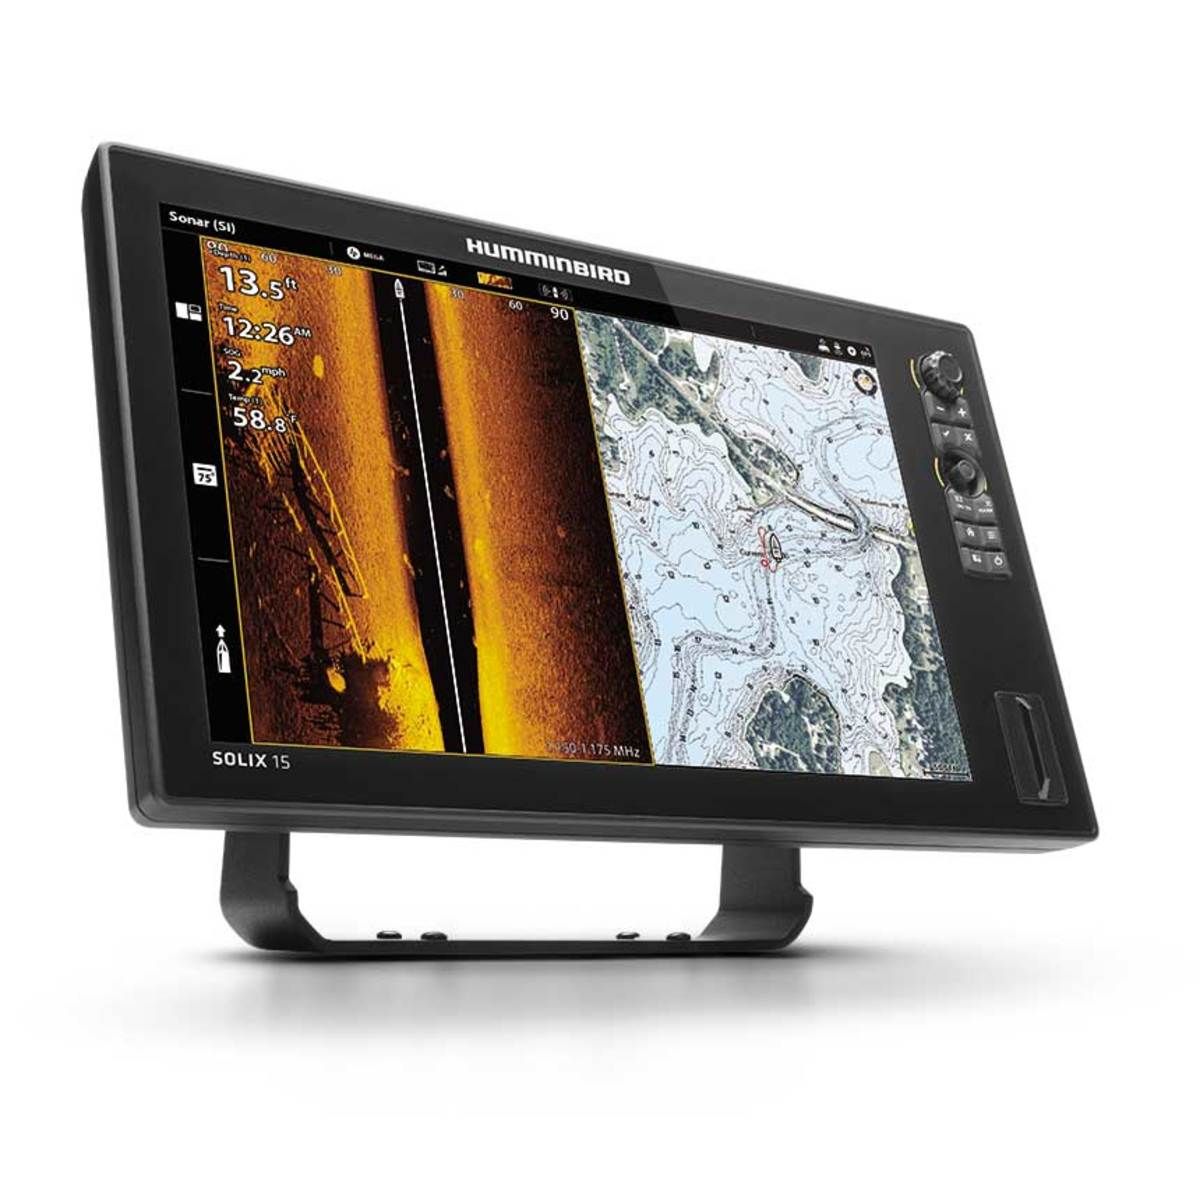 Humminbird is a leader in designing multifunction systems with simultaneous plotter and side-scan sonar functions.